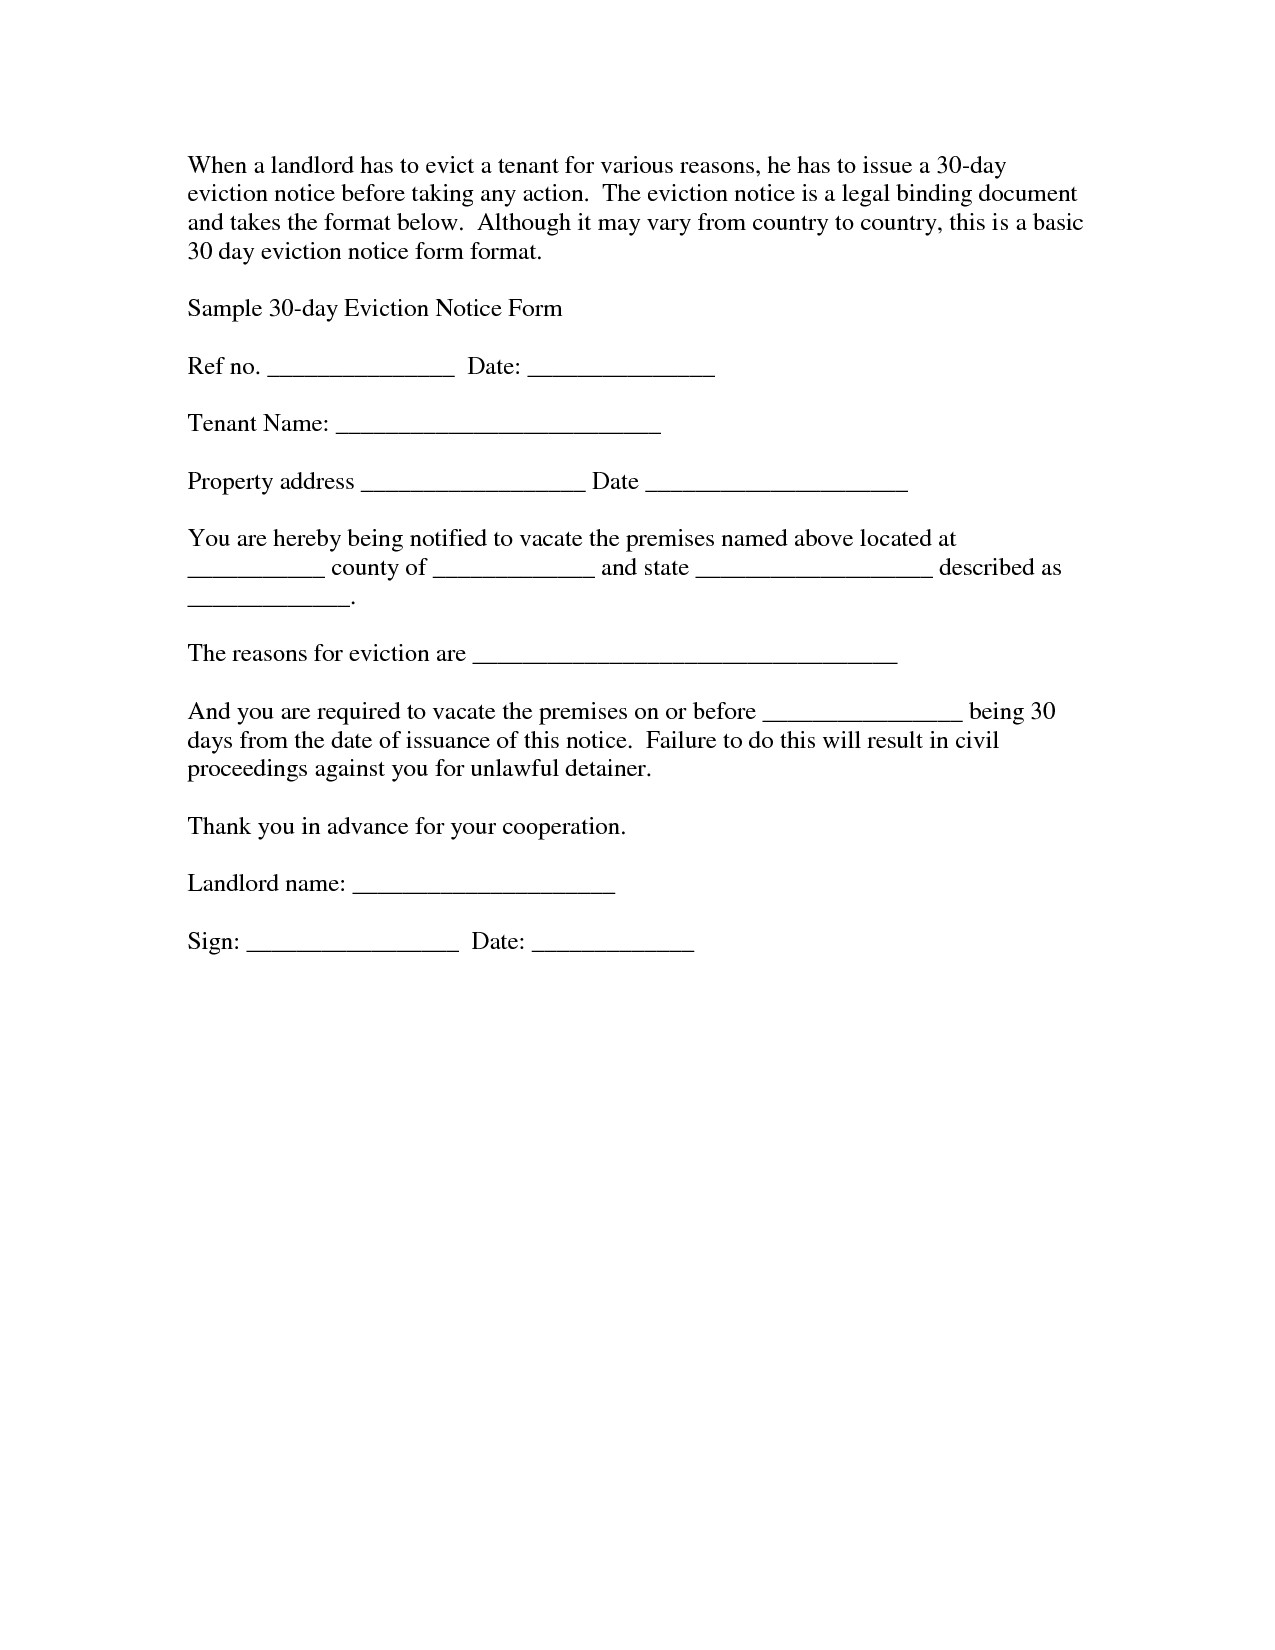 landlord eviction letter template example-Eviction Notices Fresh Three Day Eviction Notice form top An Eviction Notice Can Be 16-m